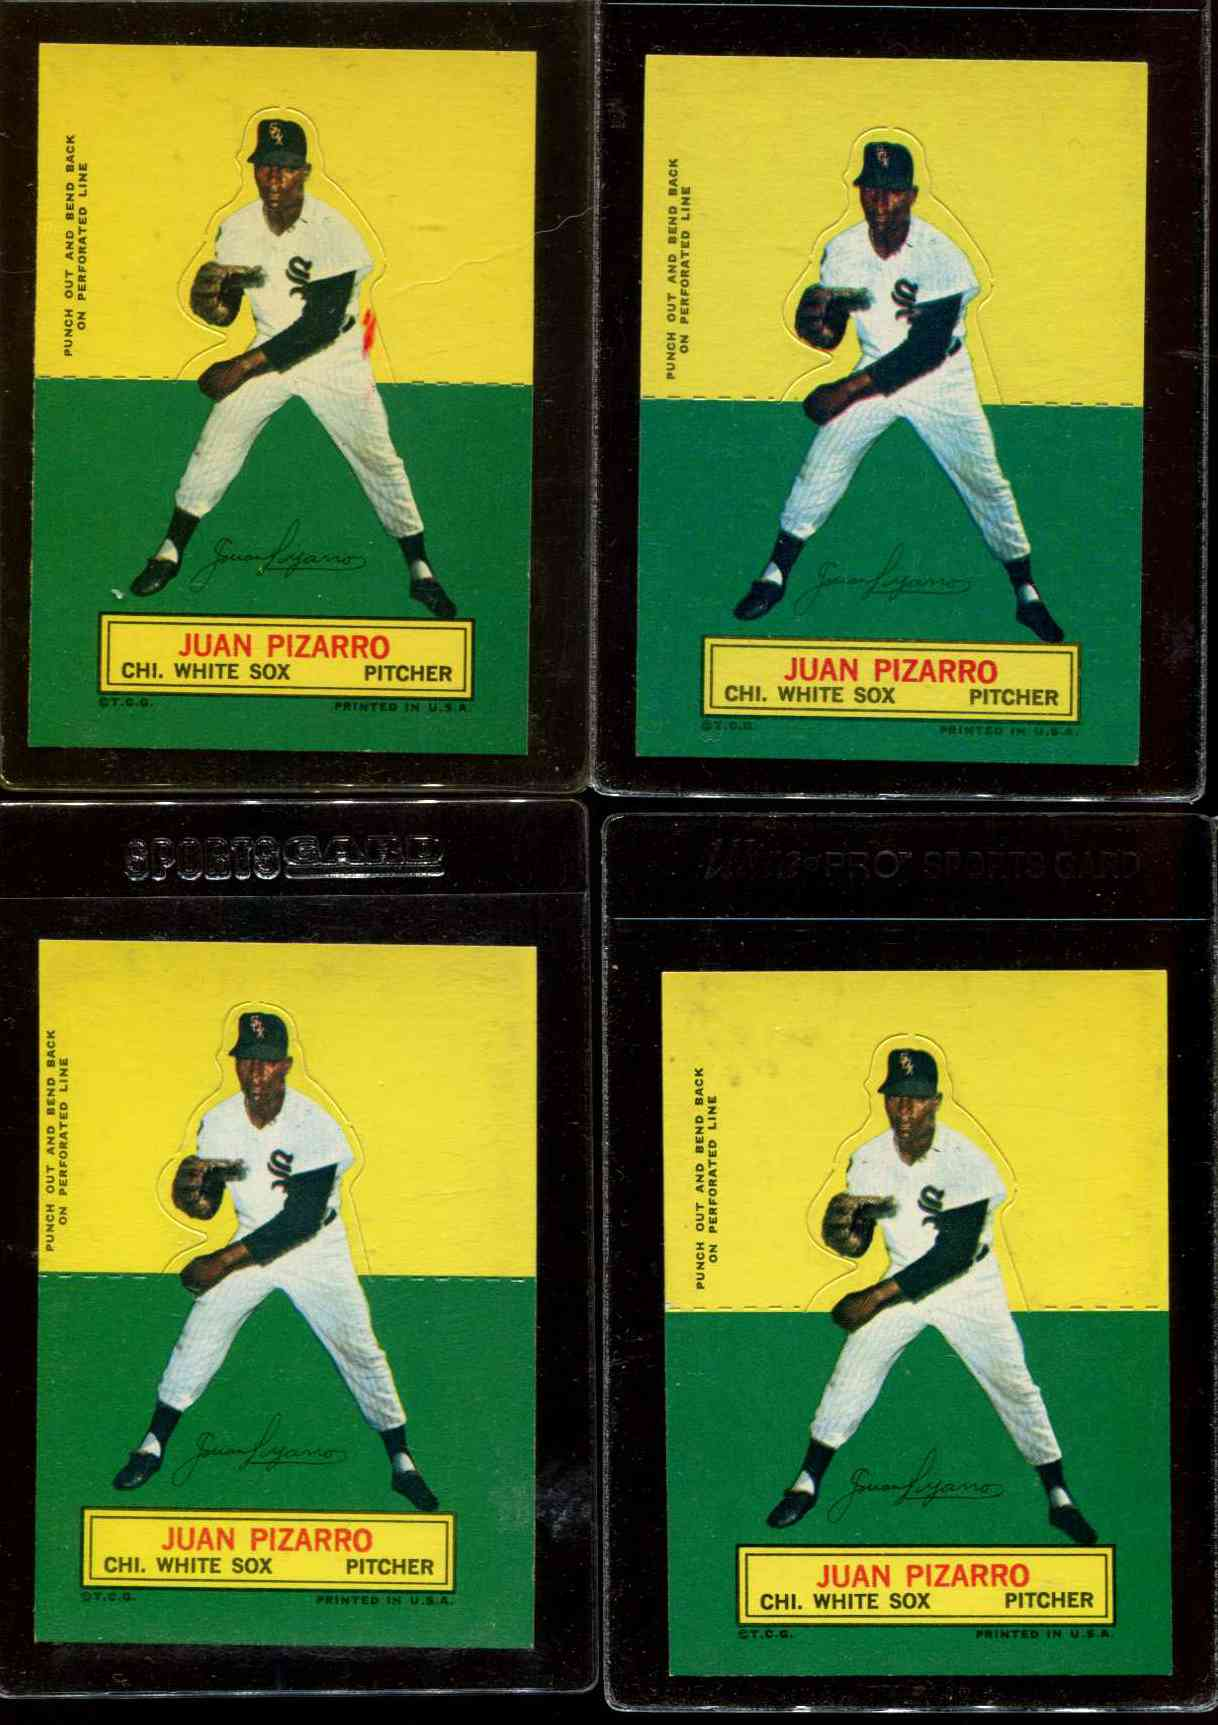 1964 Topps Stand-Ups/Standups - Juan Pizarro [#a] (White Sox) Baseball cards value